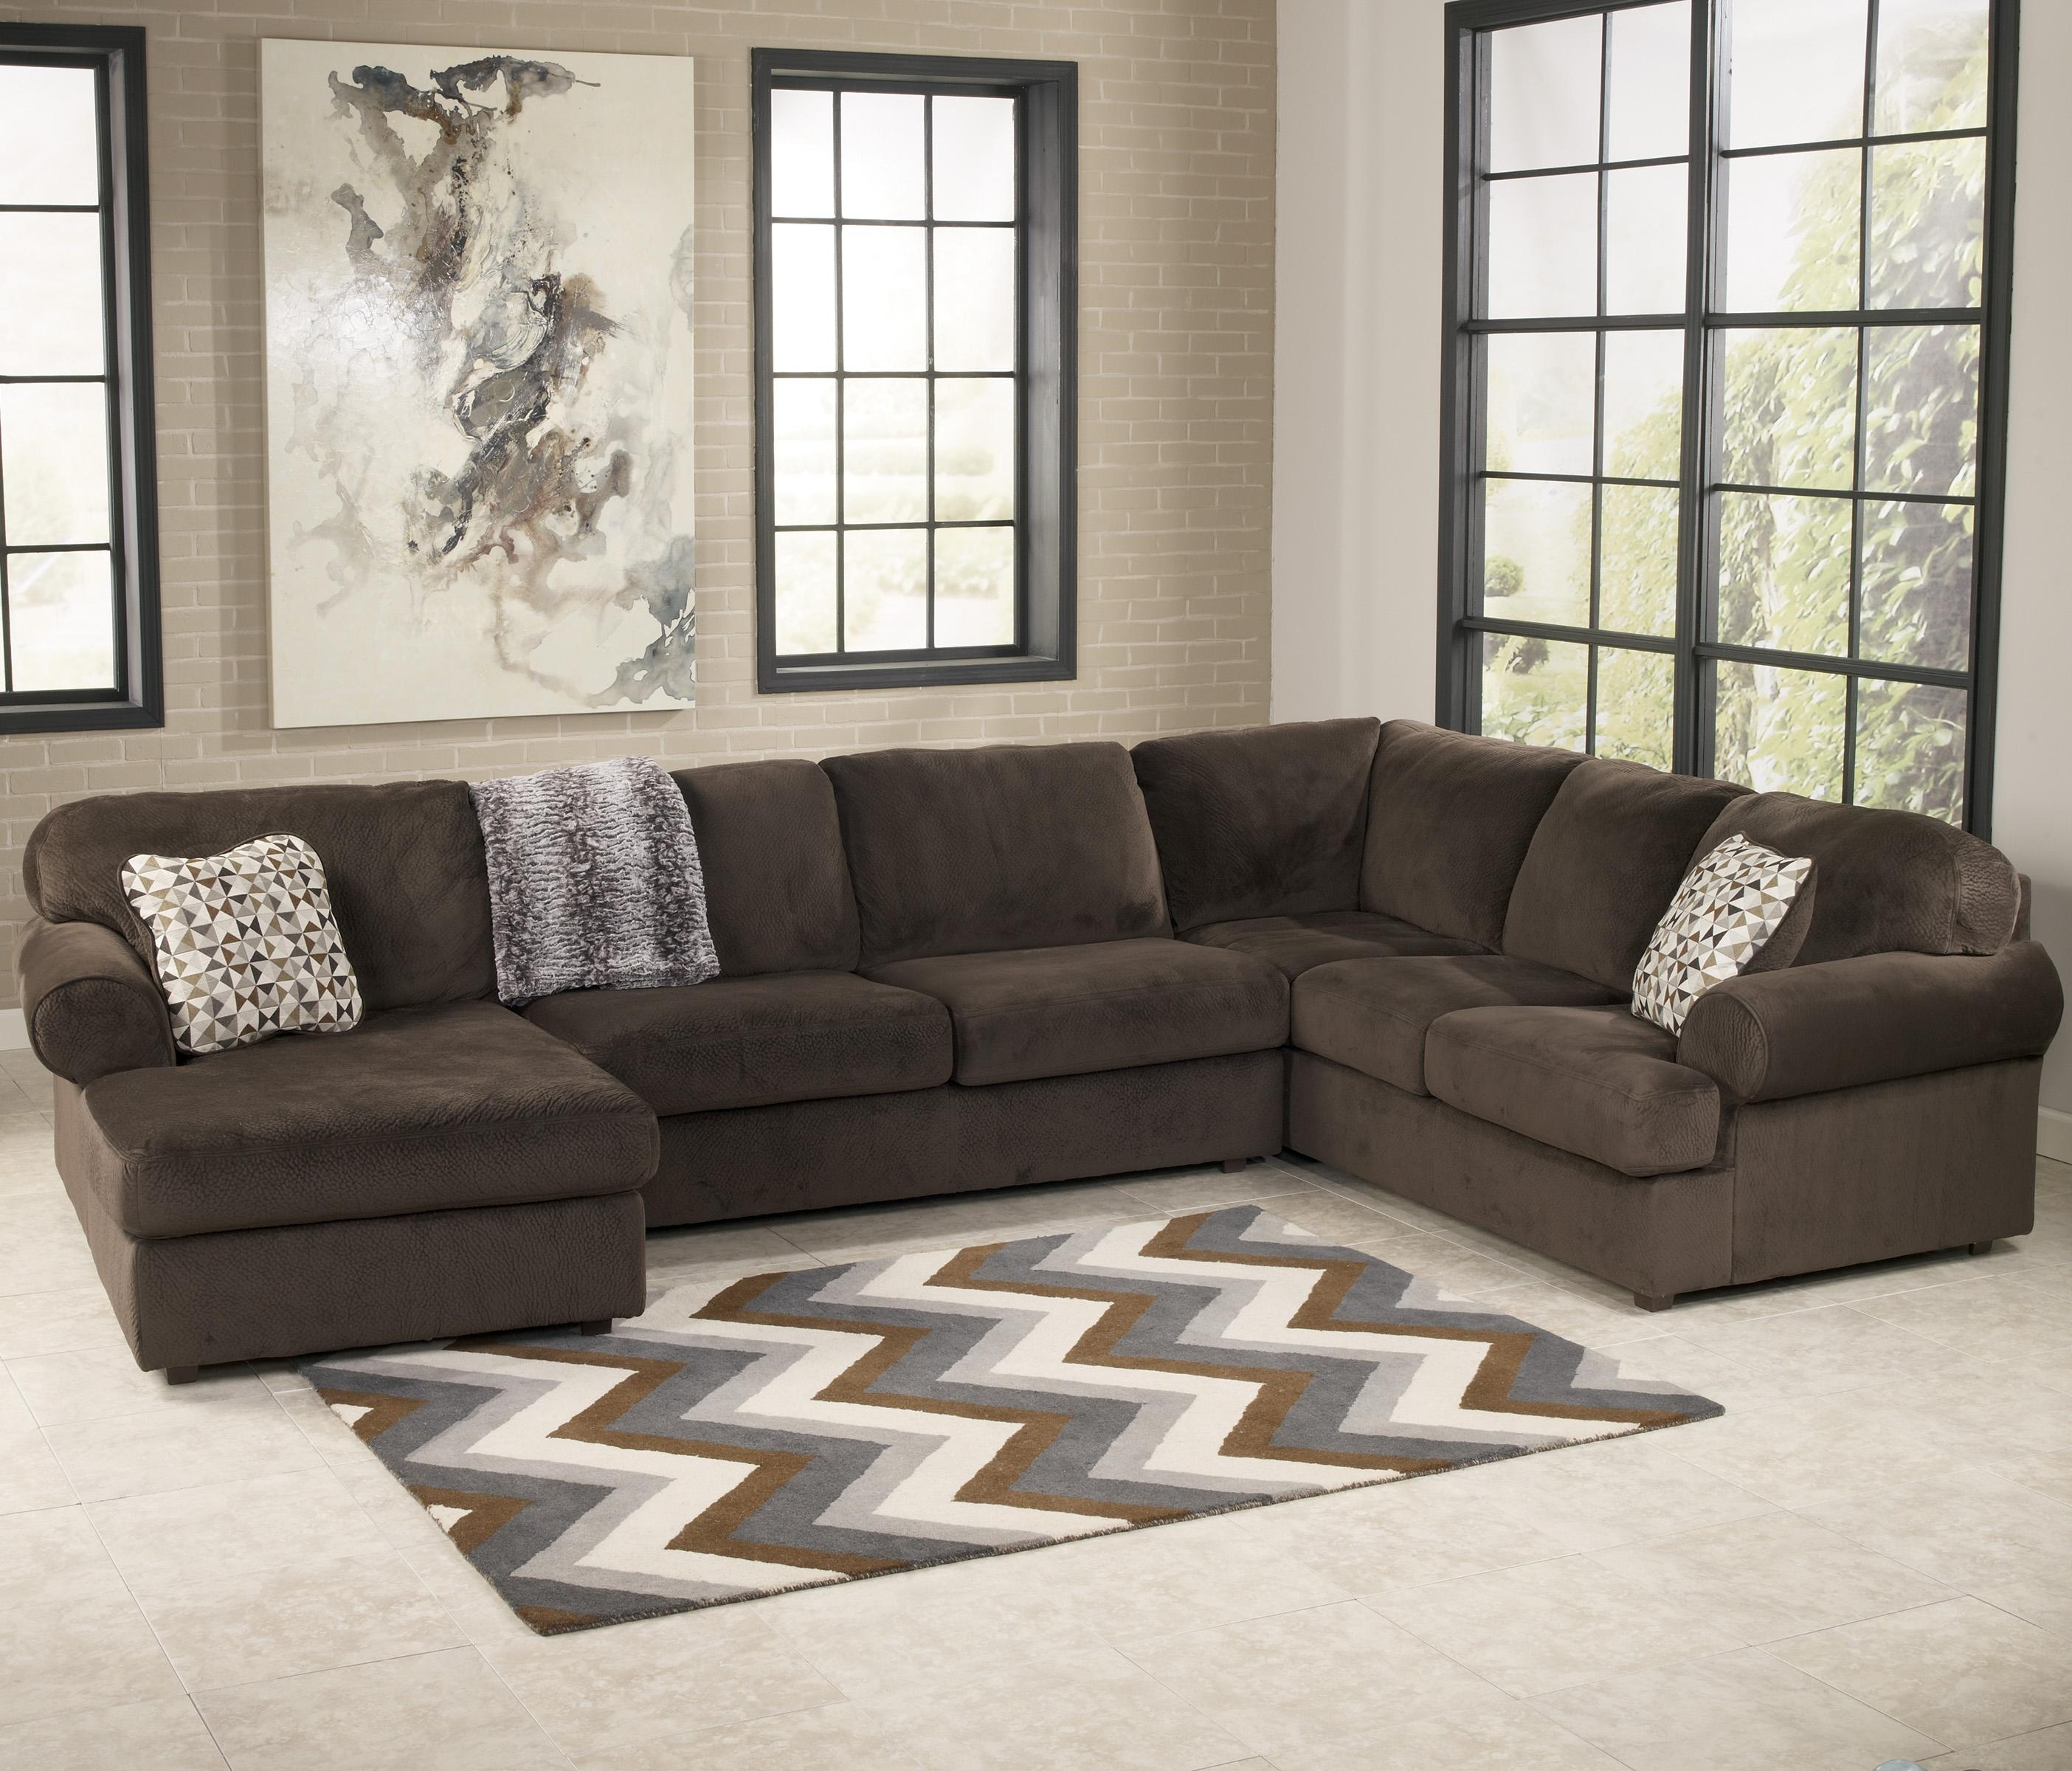 Sectional Couches Contemporary Sofas Chicago The Room Place Credit regarding Sectional Sofas At Chicago (Image 9 of 15)